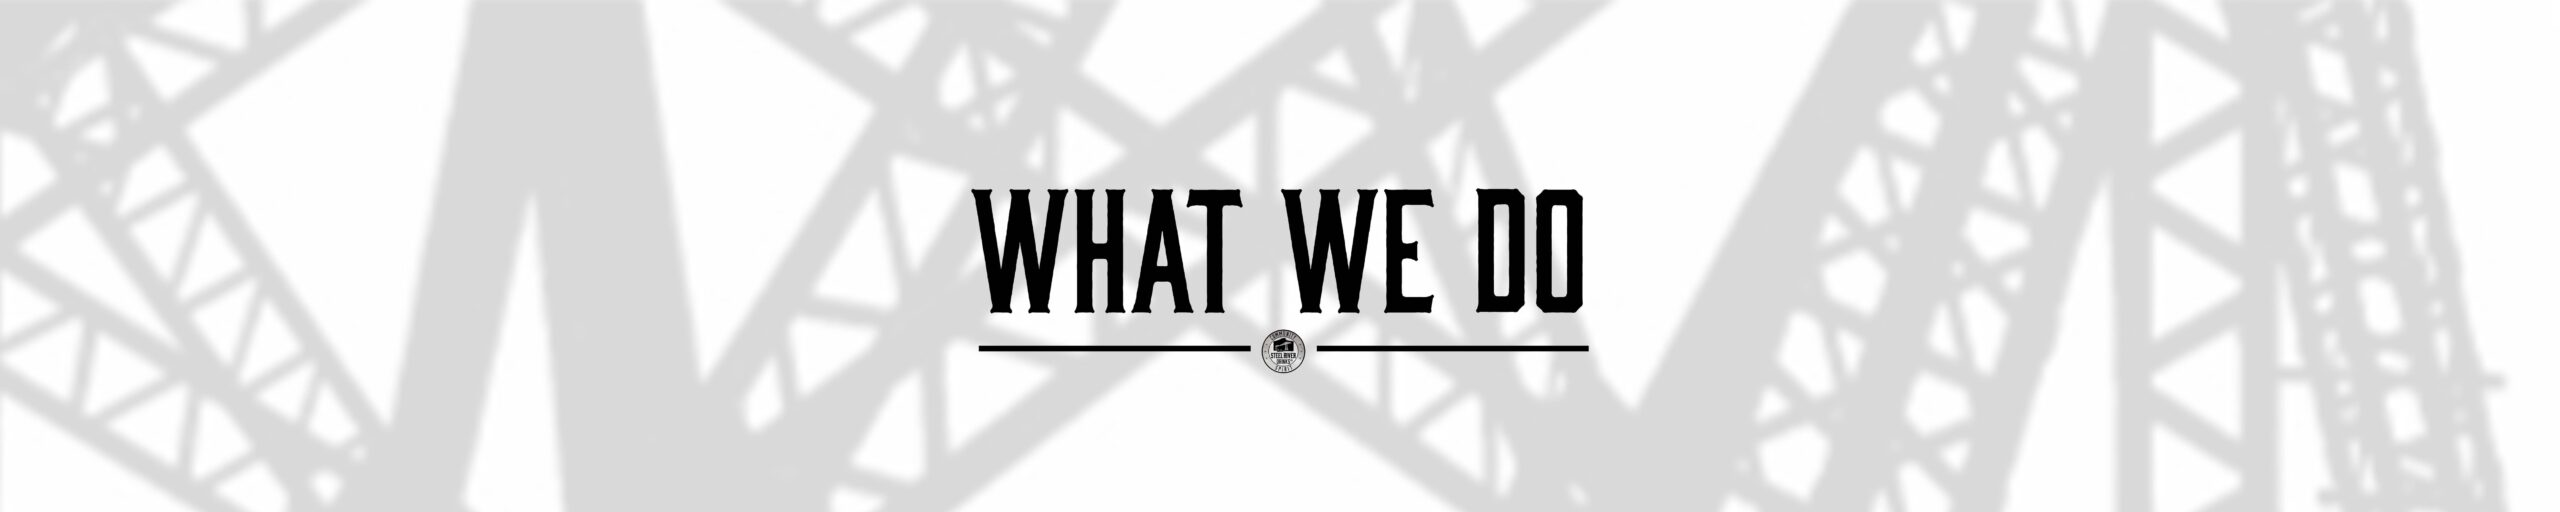 Title Banner Text: What we do